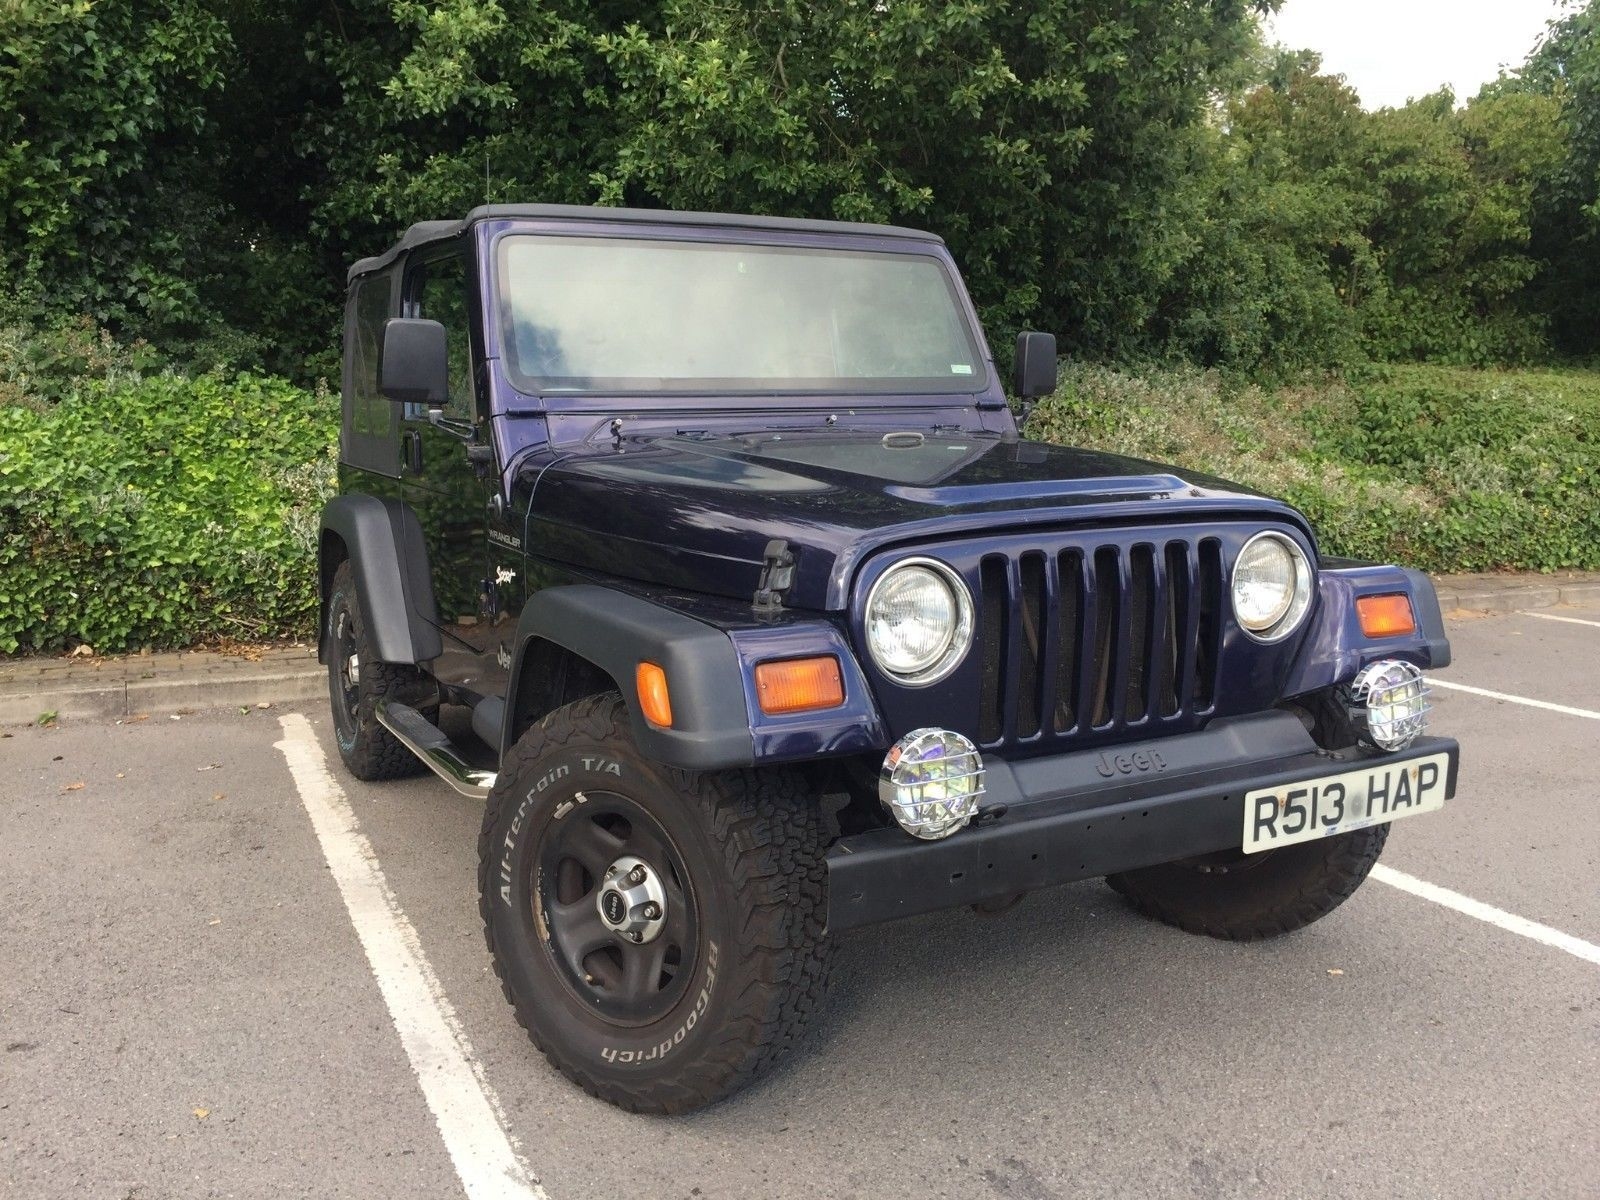 EBay: Jeep Wrangler TJ 2.5 Petrol Manual 1998 / R Soft Top 4x4 Off Road